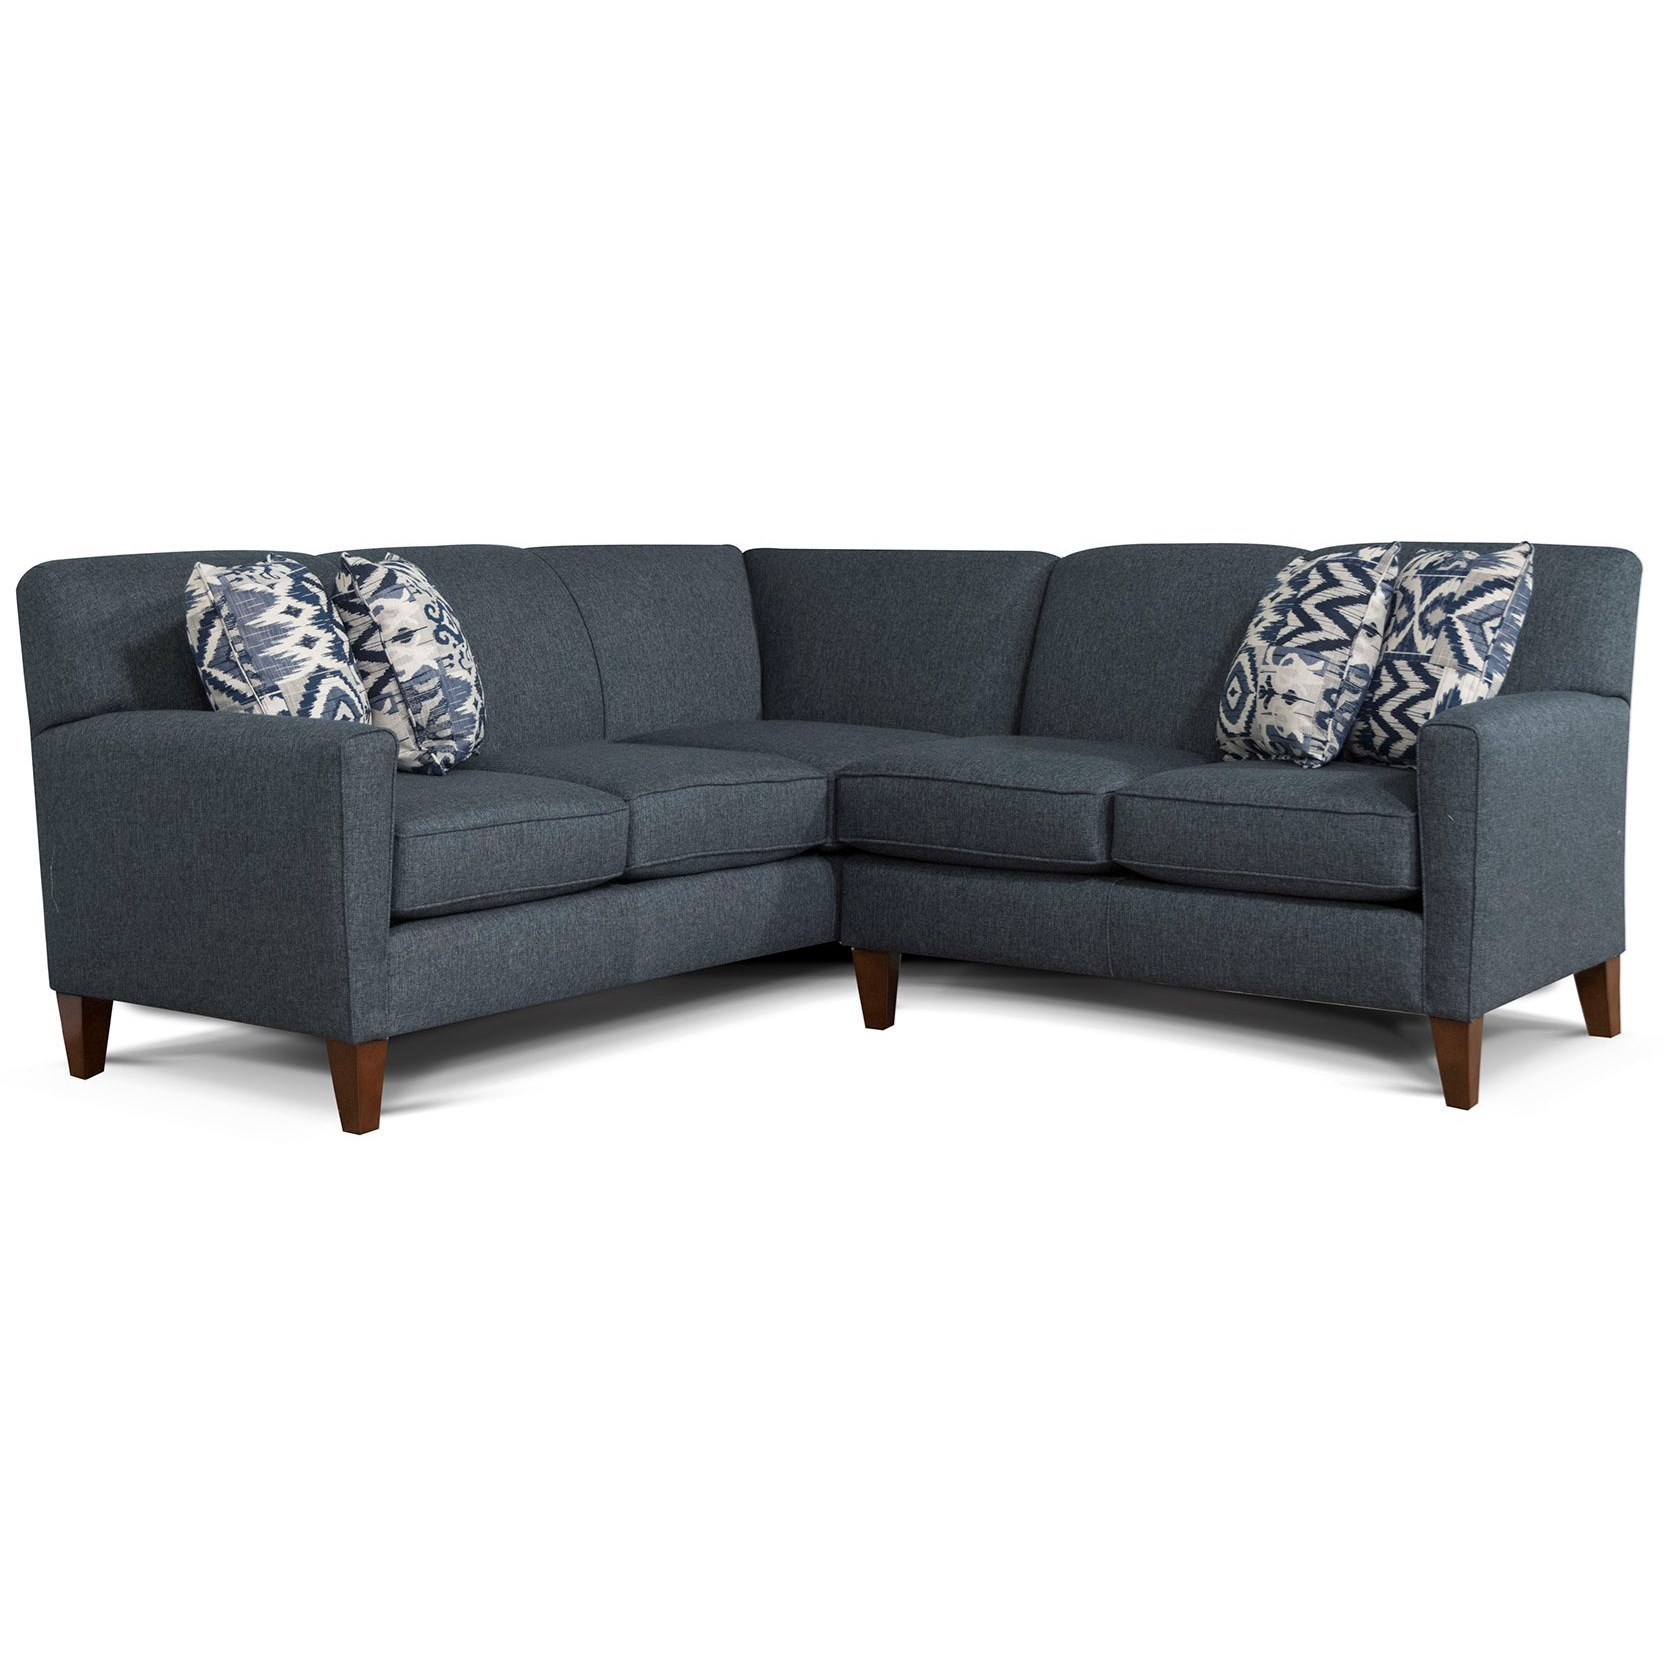 Astounding Alexvale V620 Contemporary 2 Piece Sectional Stegers Squirreltailoven Fun Painted Chair Ideas Images Squirreltailovenorg